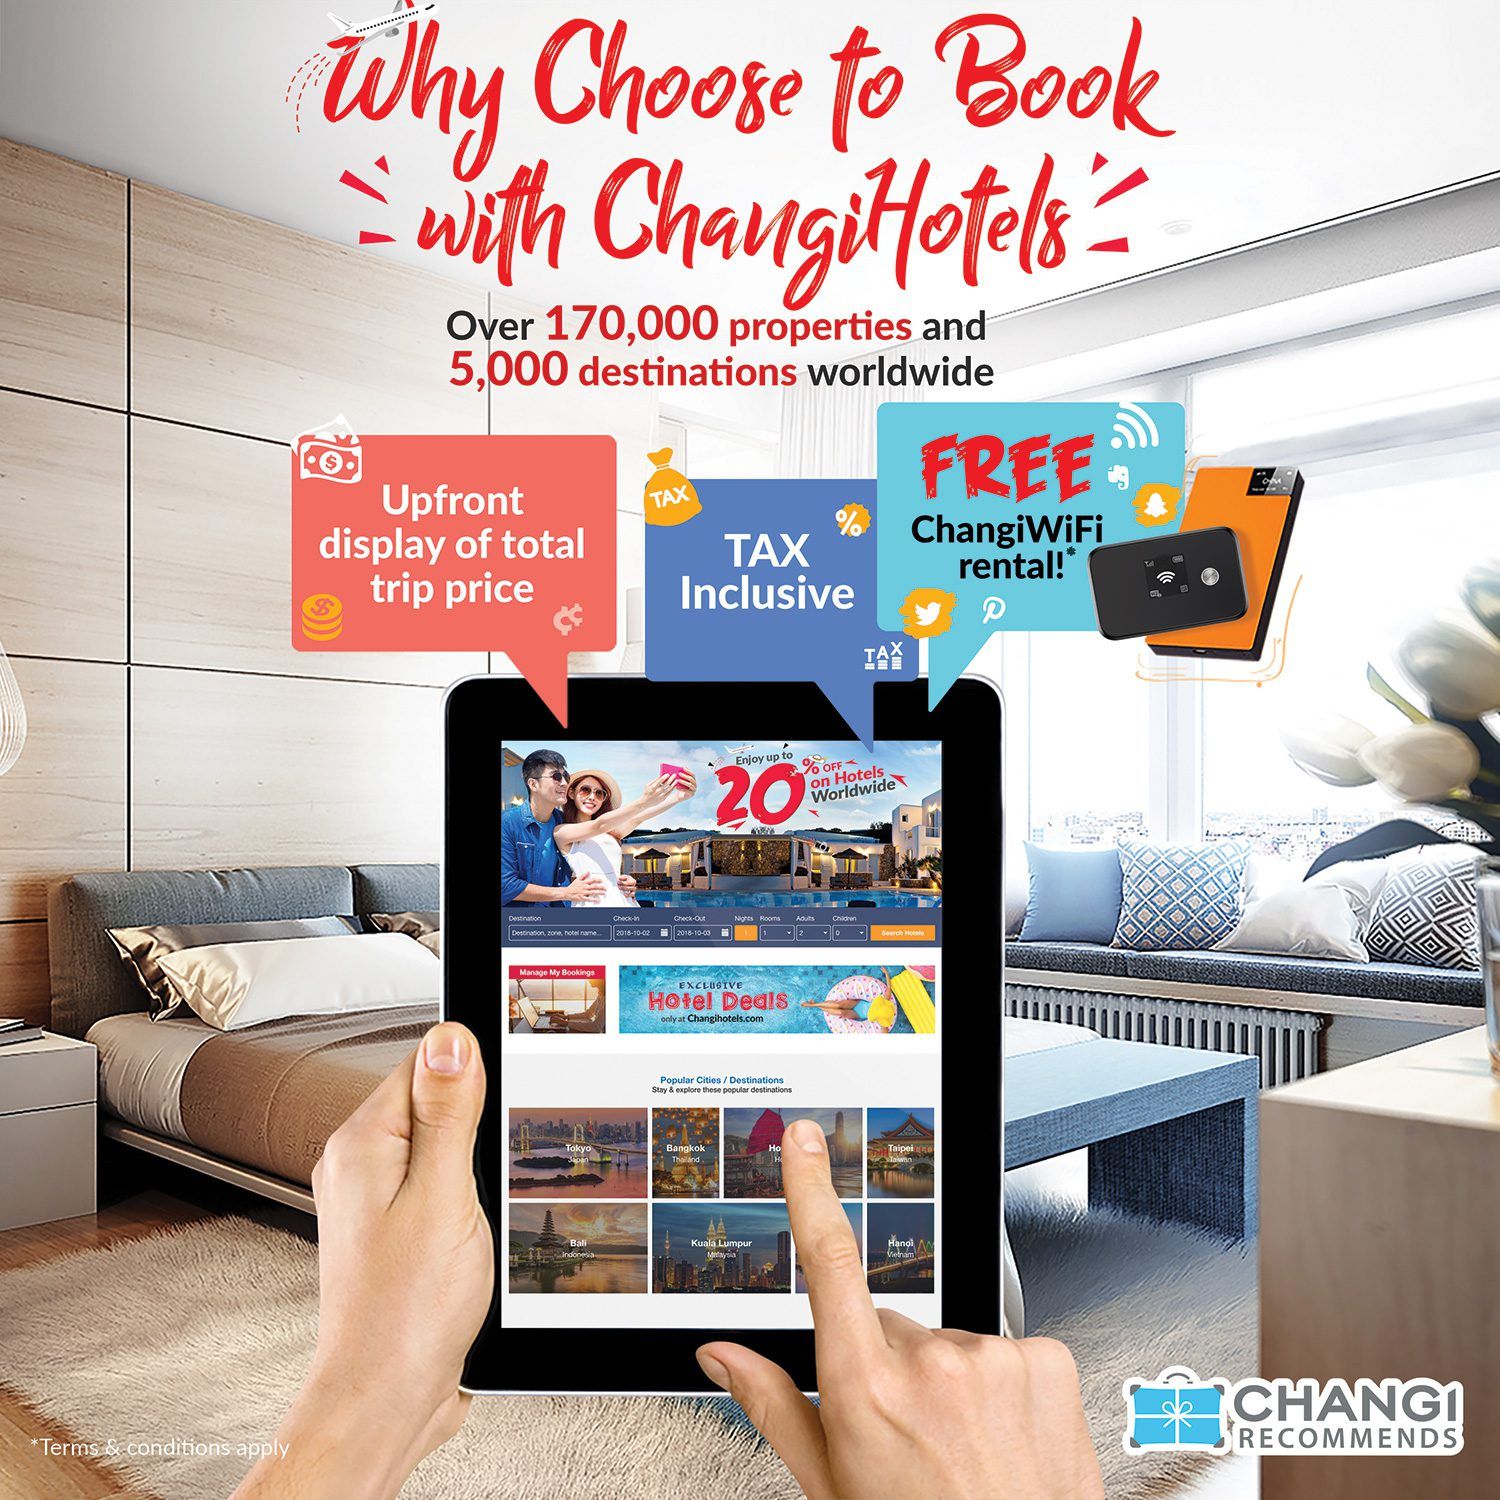 Changi Recommends introduces ChangiHotels